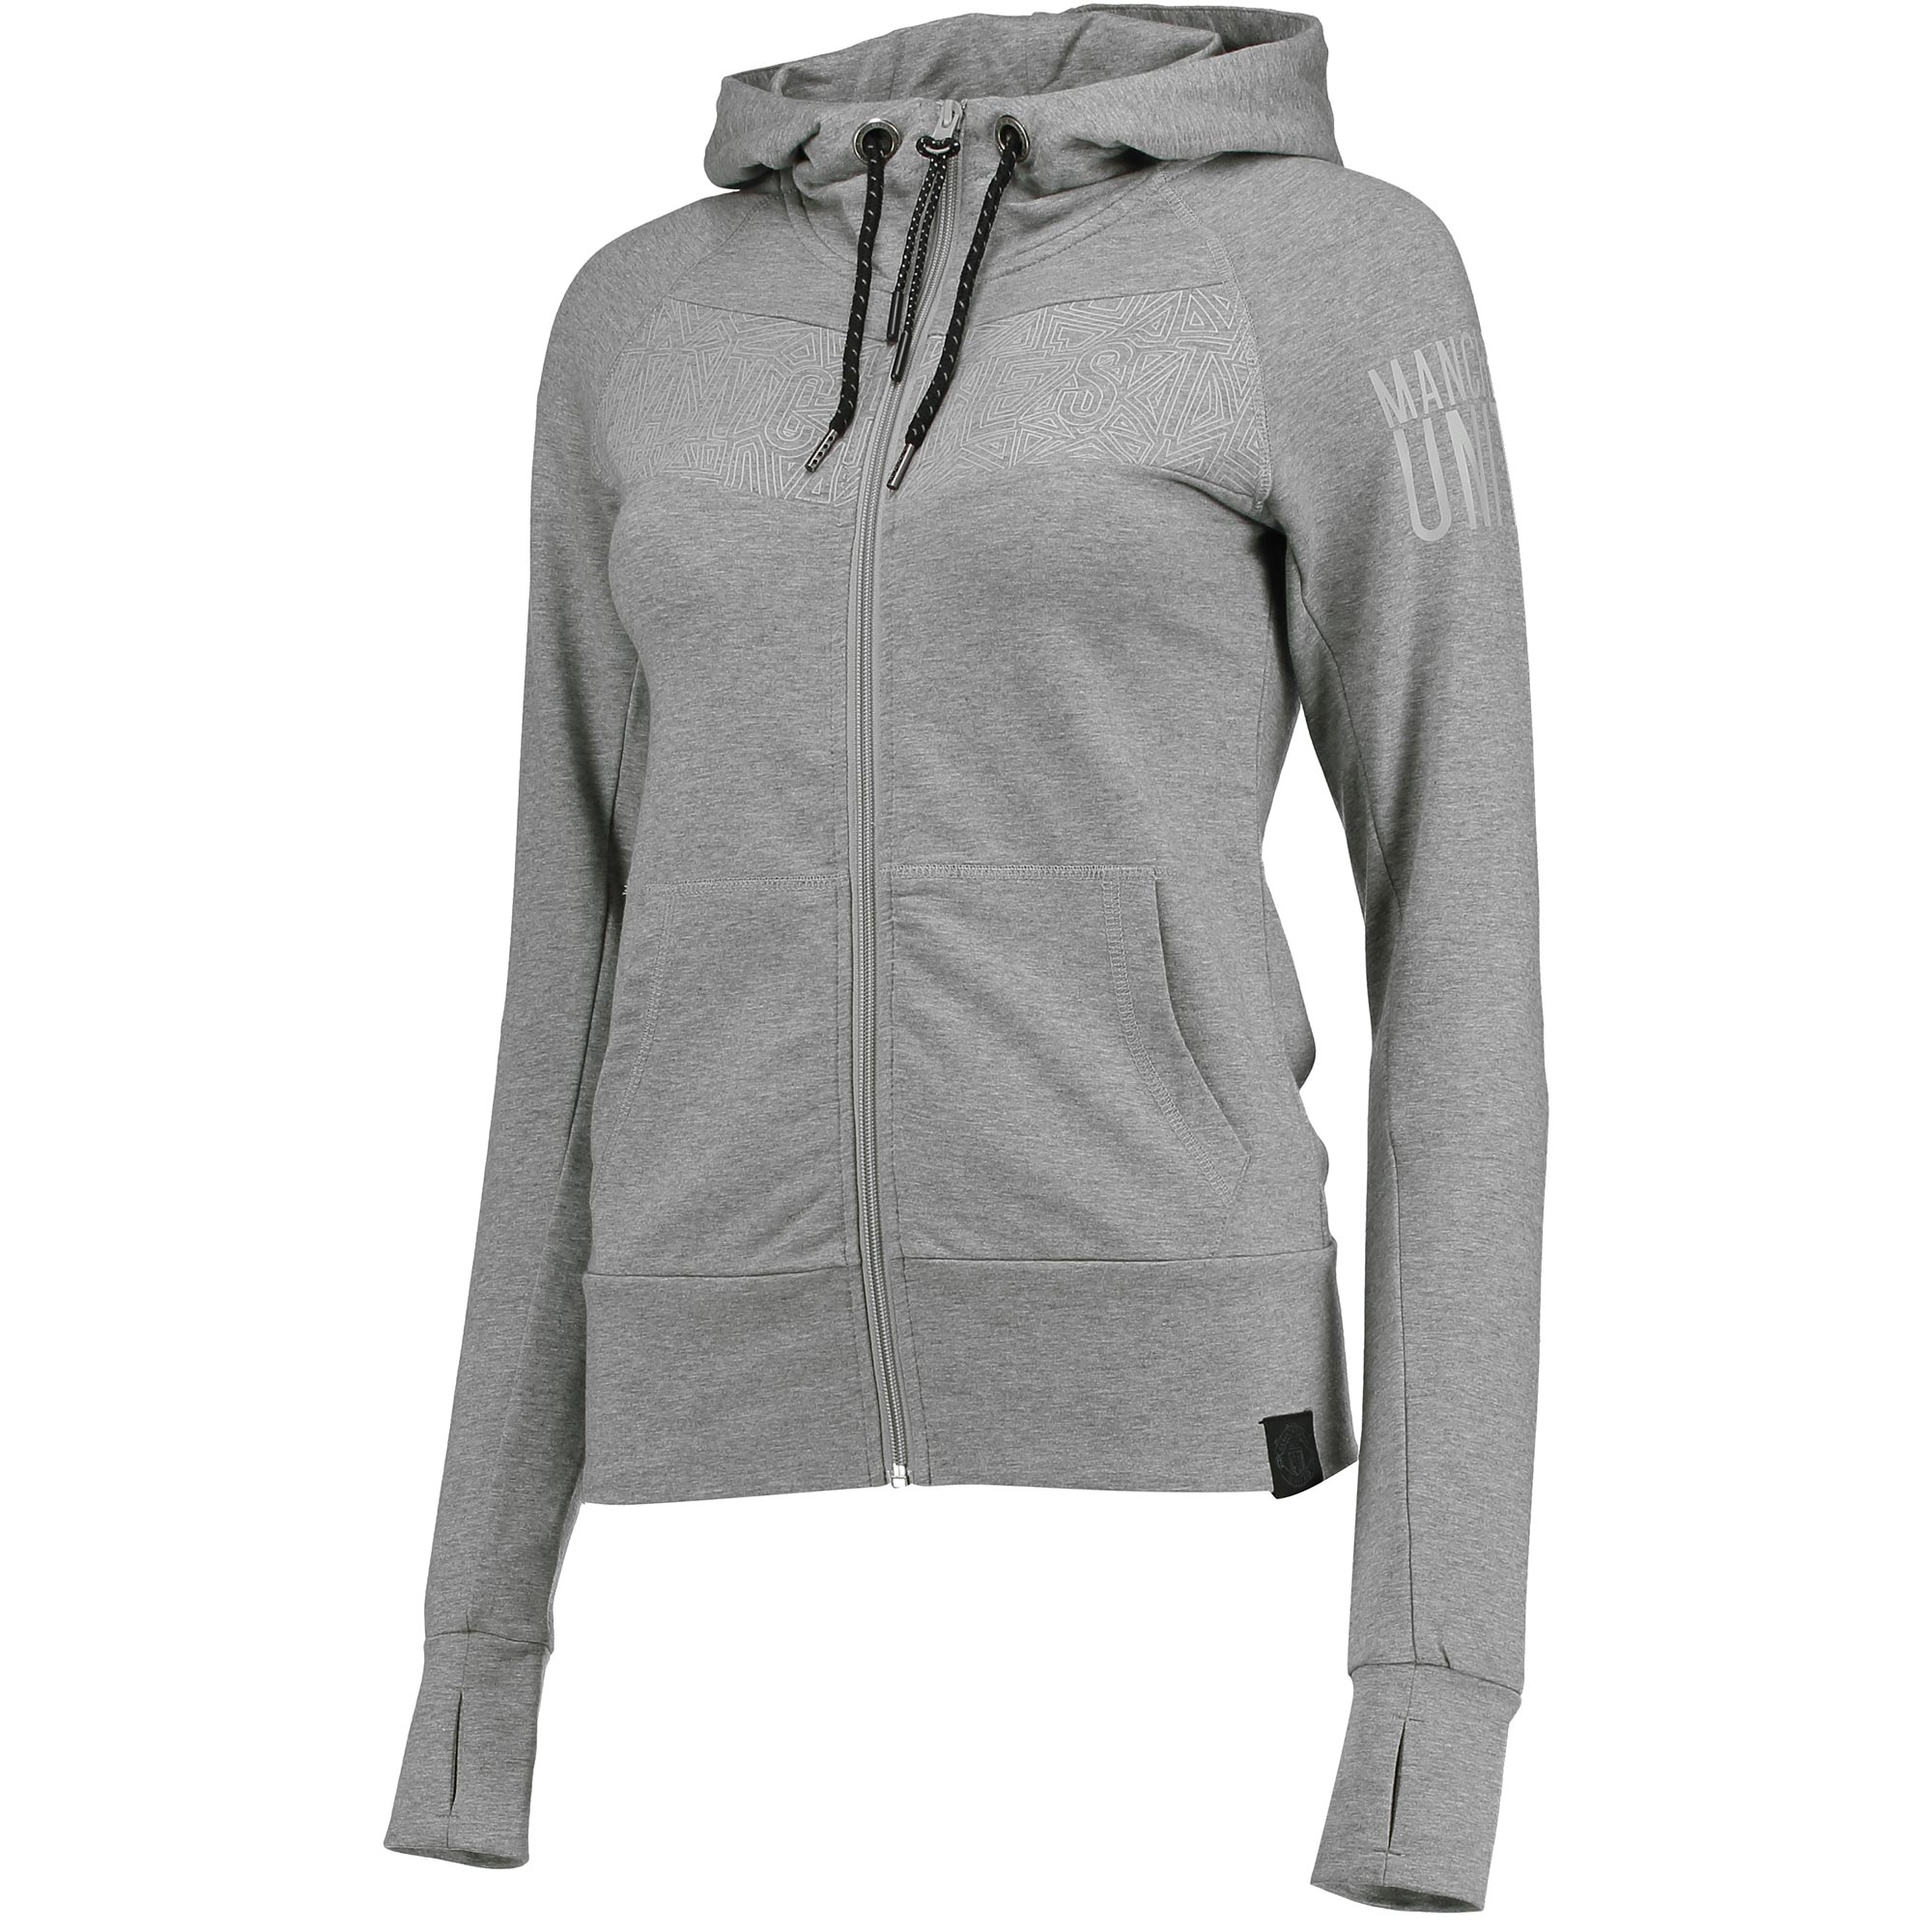 Manchester United Sportswear Full Zip Hoodie - Grey - Womens